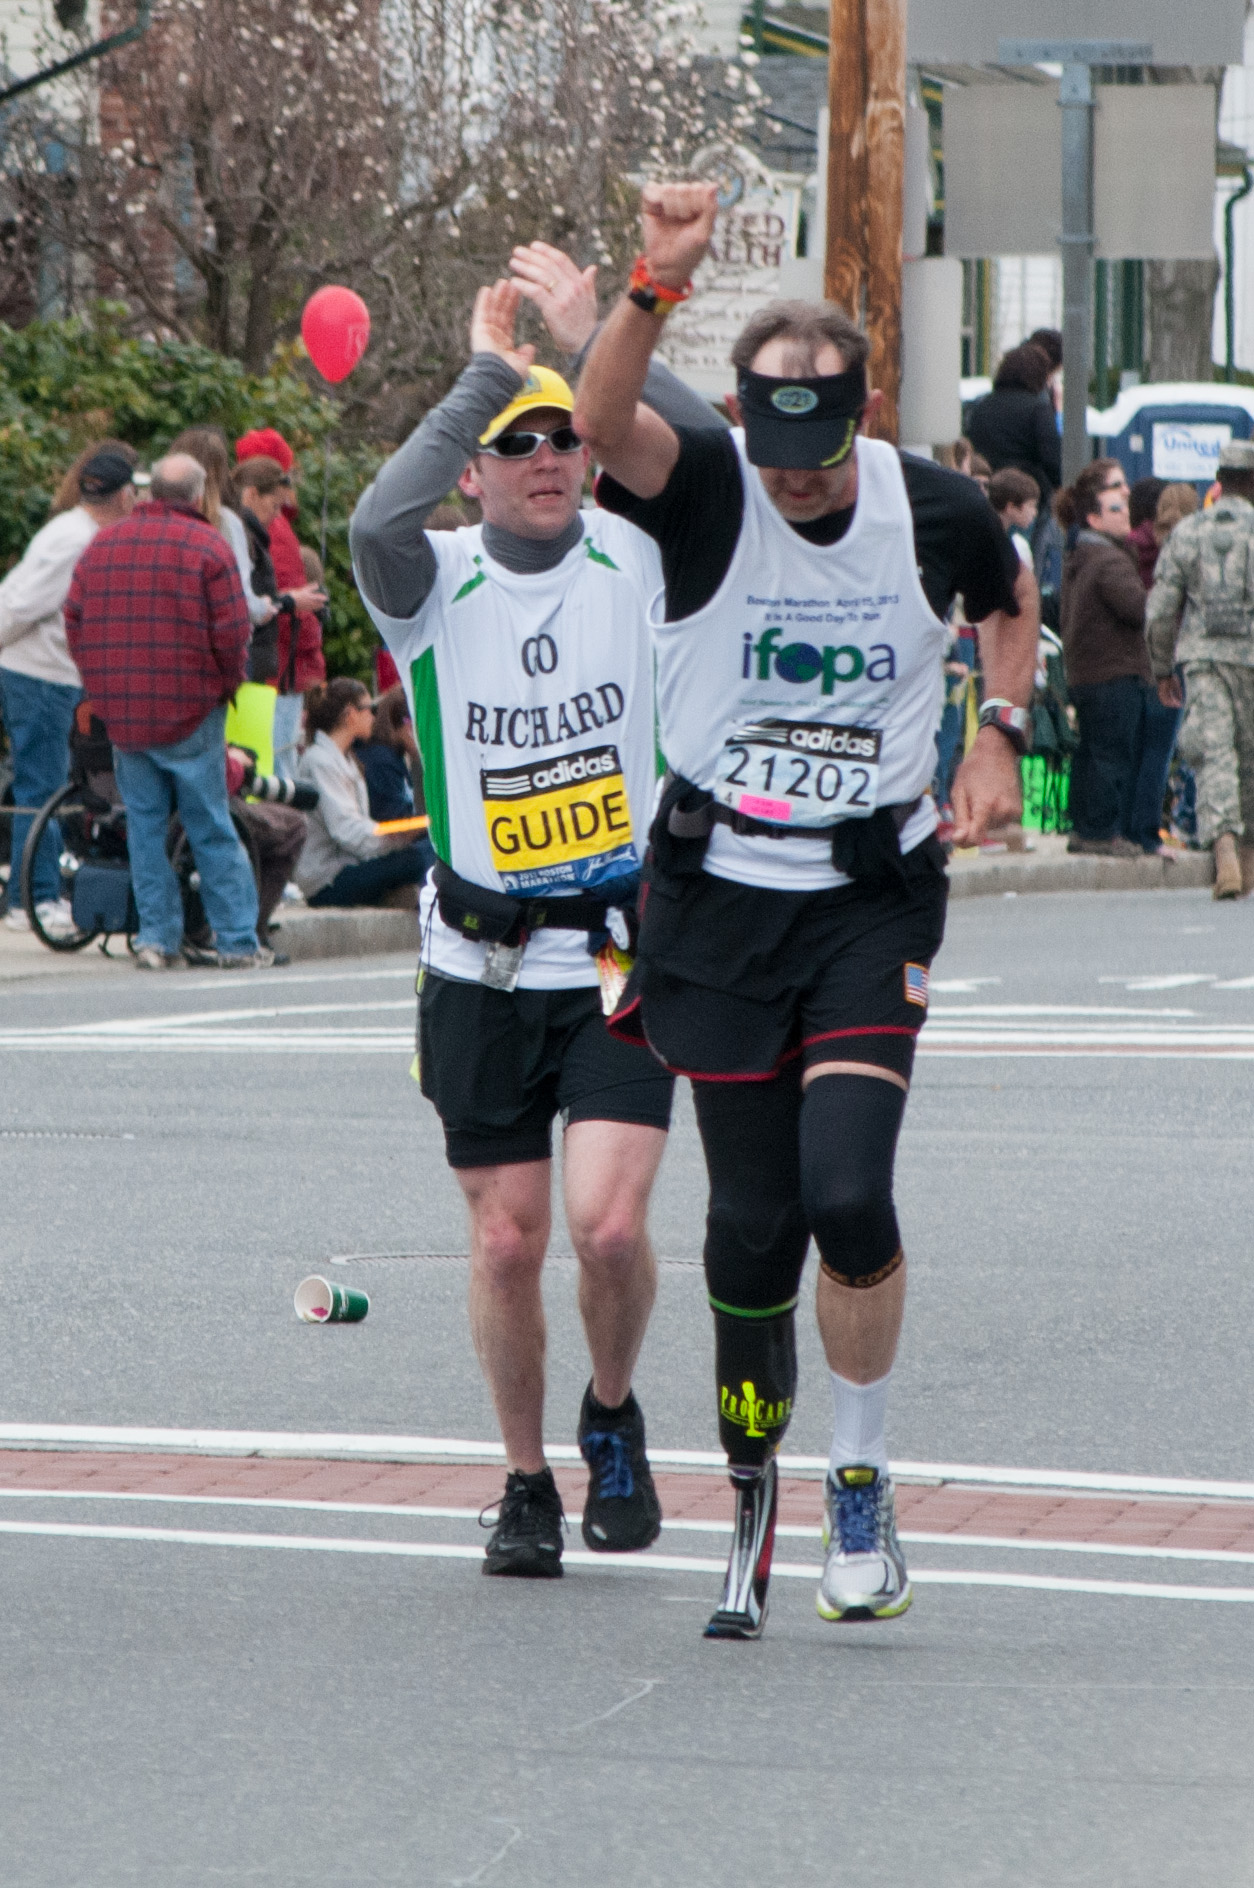 Richard Blalock at mile 10 of the 2013 Boston Marathon